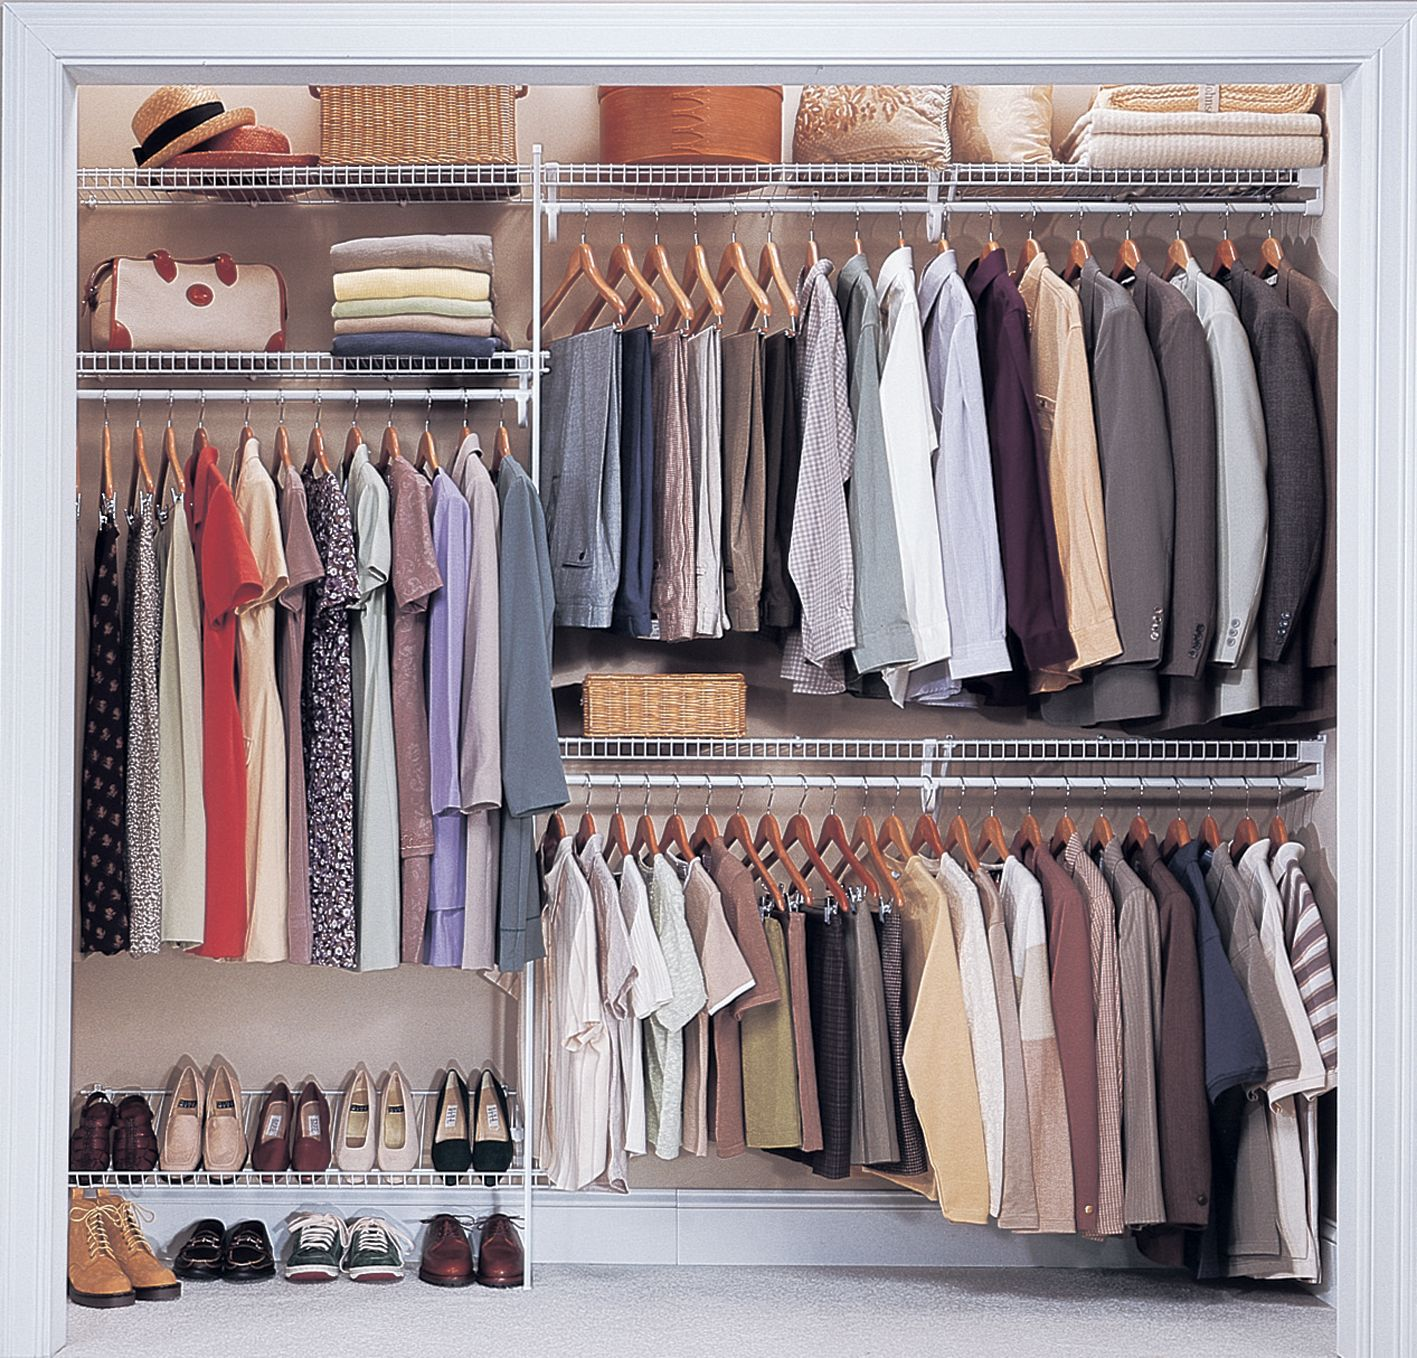 Reach In Closet Design Ideas reach in closet is there enough depth to do this on one side and is it an economical use of space closet pinterest closet Reach In Closet Ideas Google Search